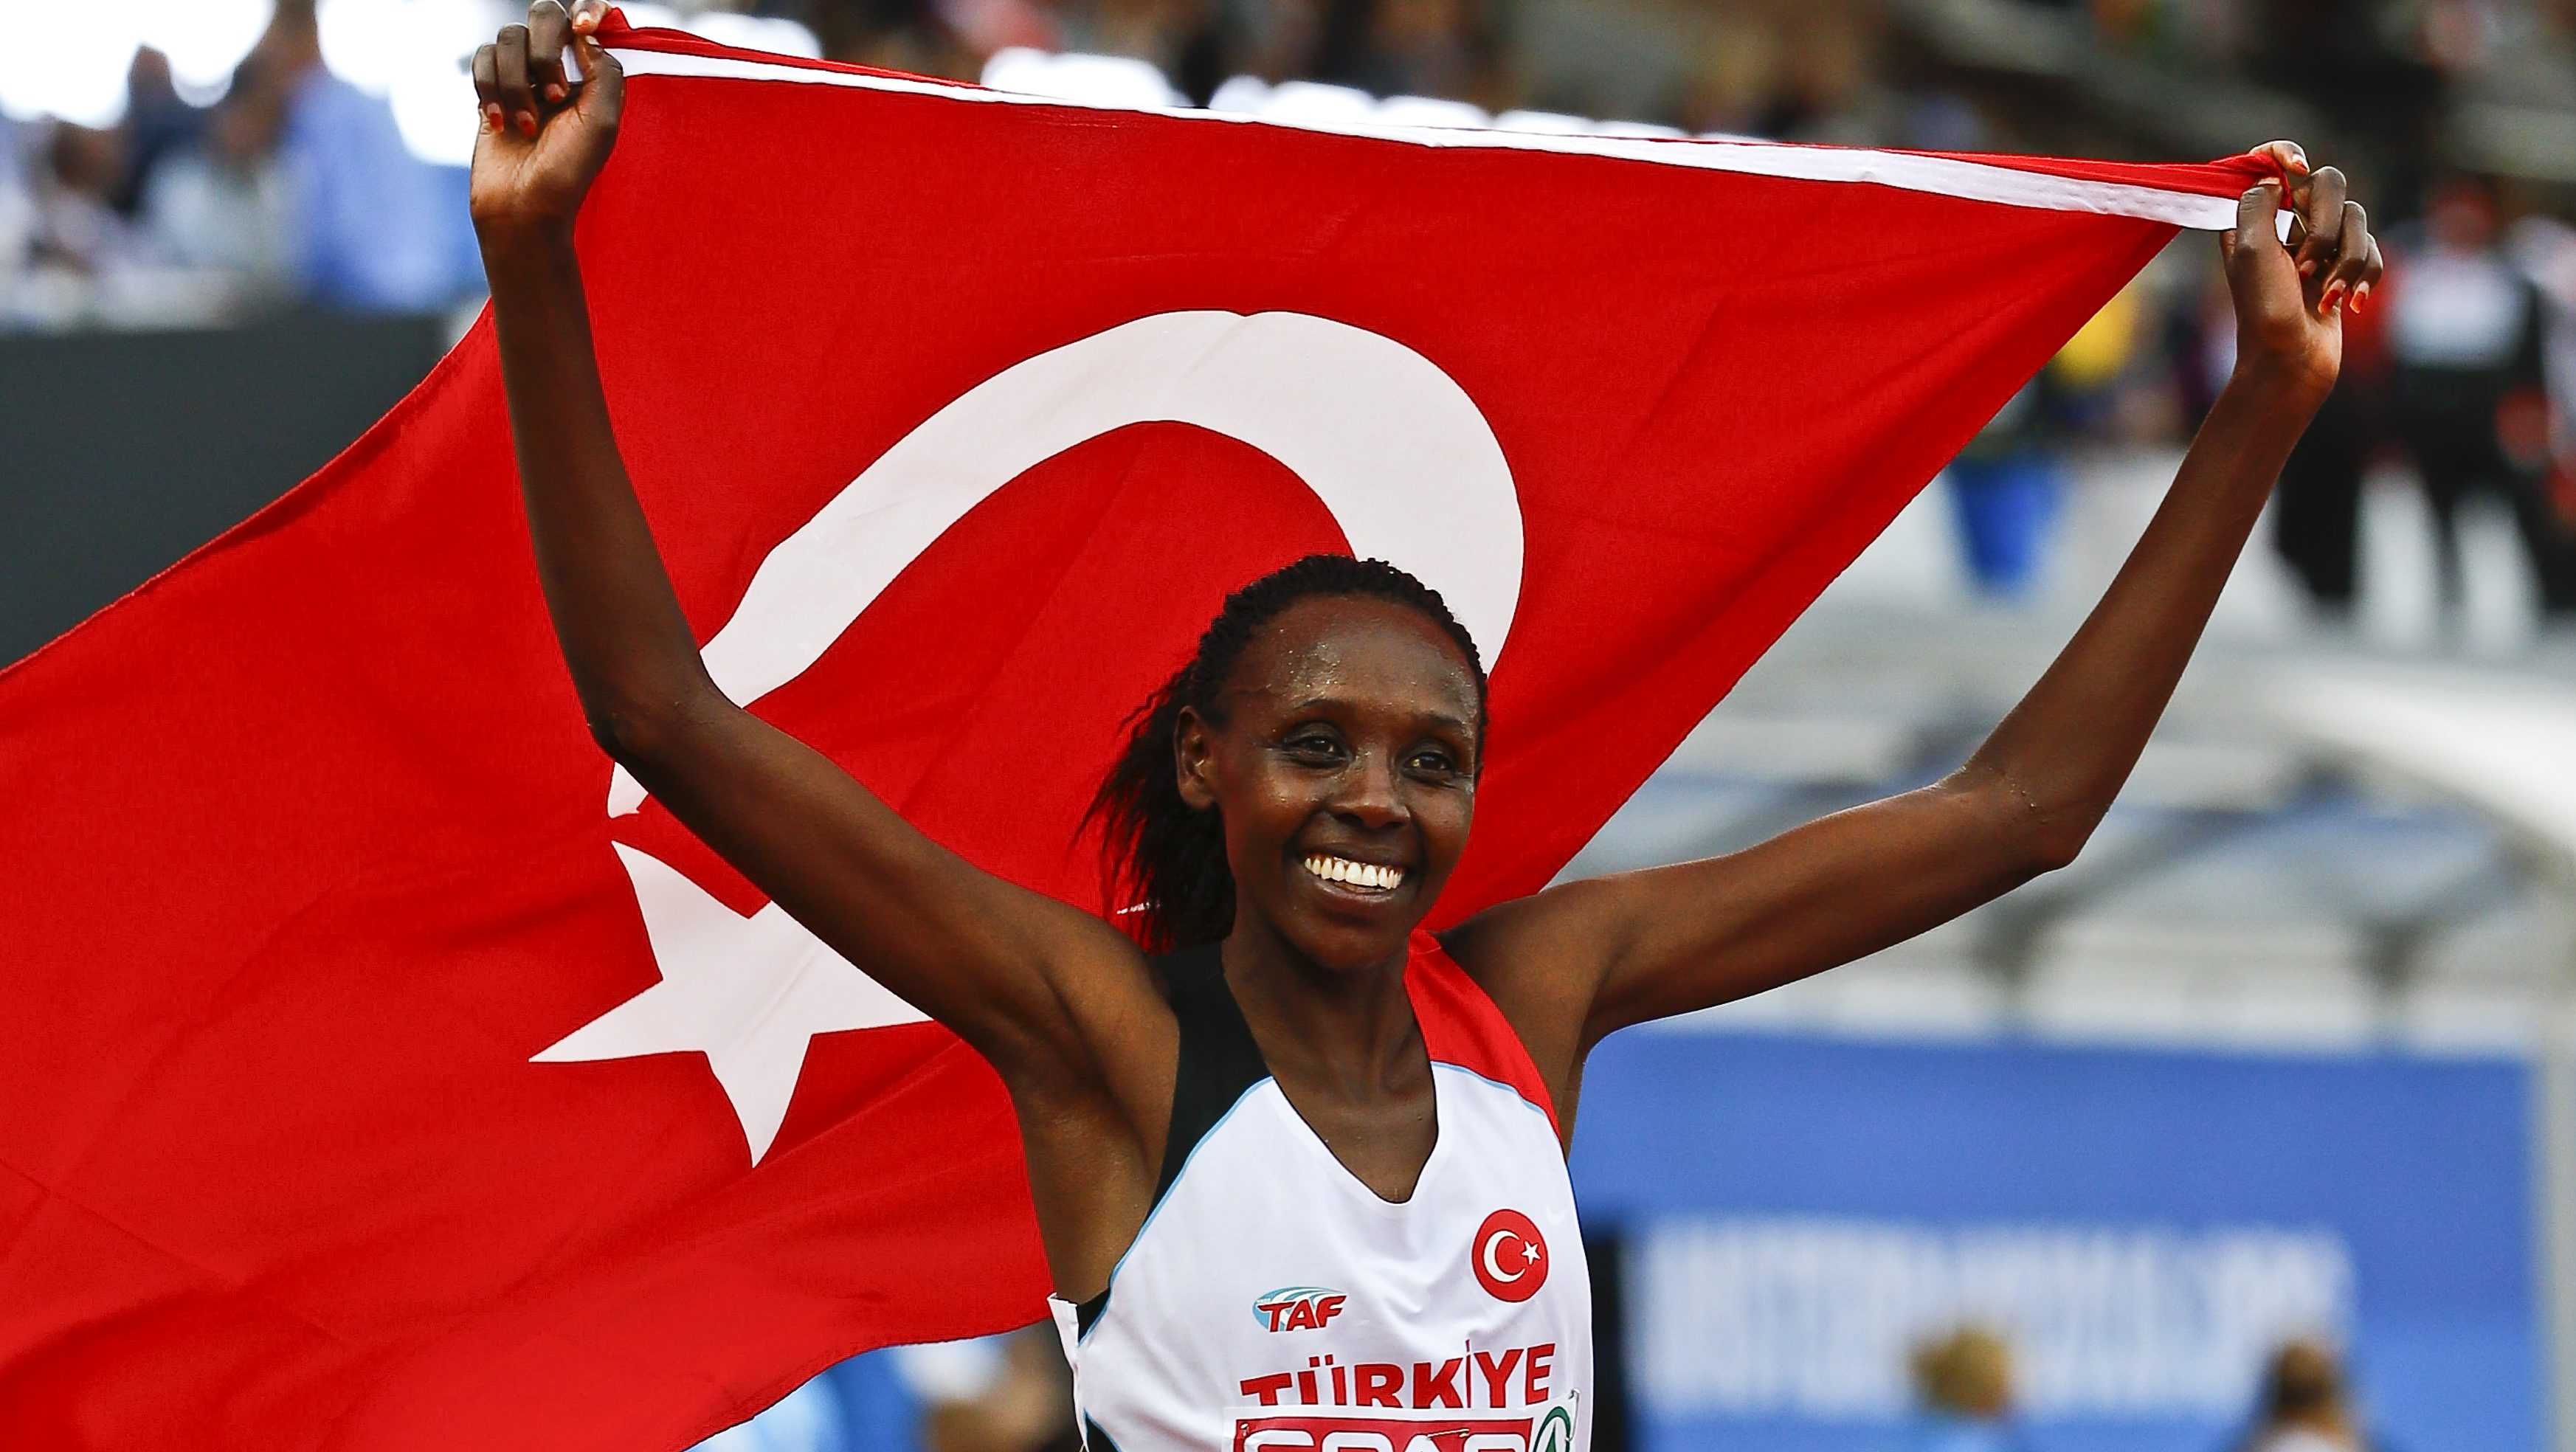 Turkey's Kenyan-born runner Yasemin Can will at Rio Olympics